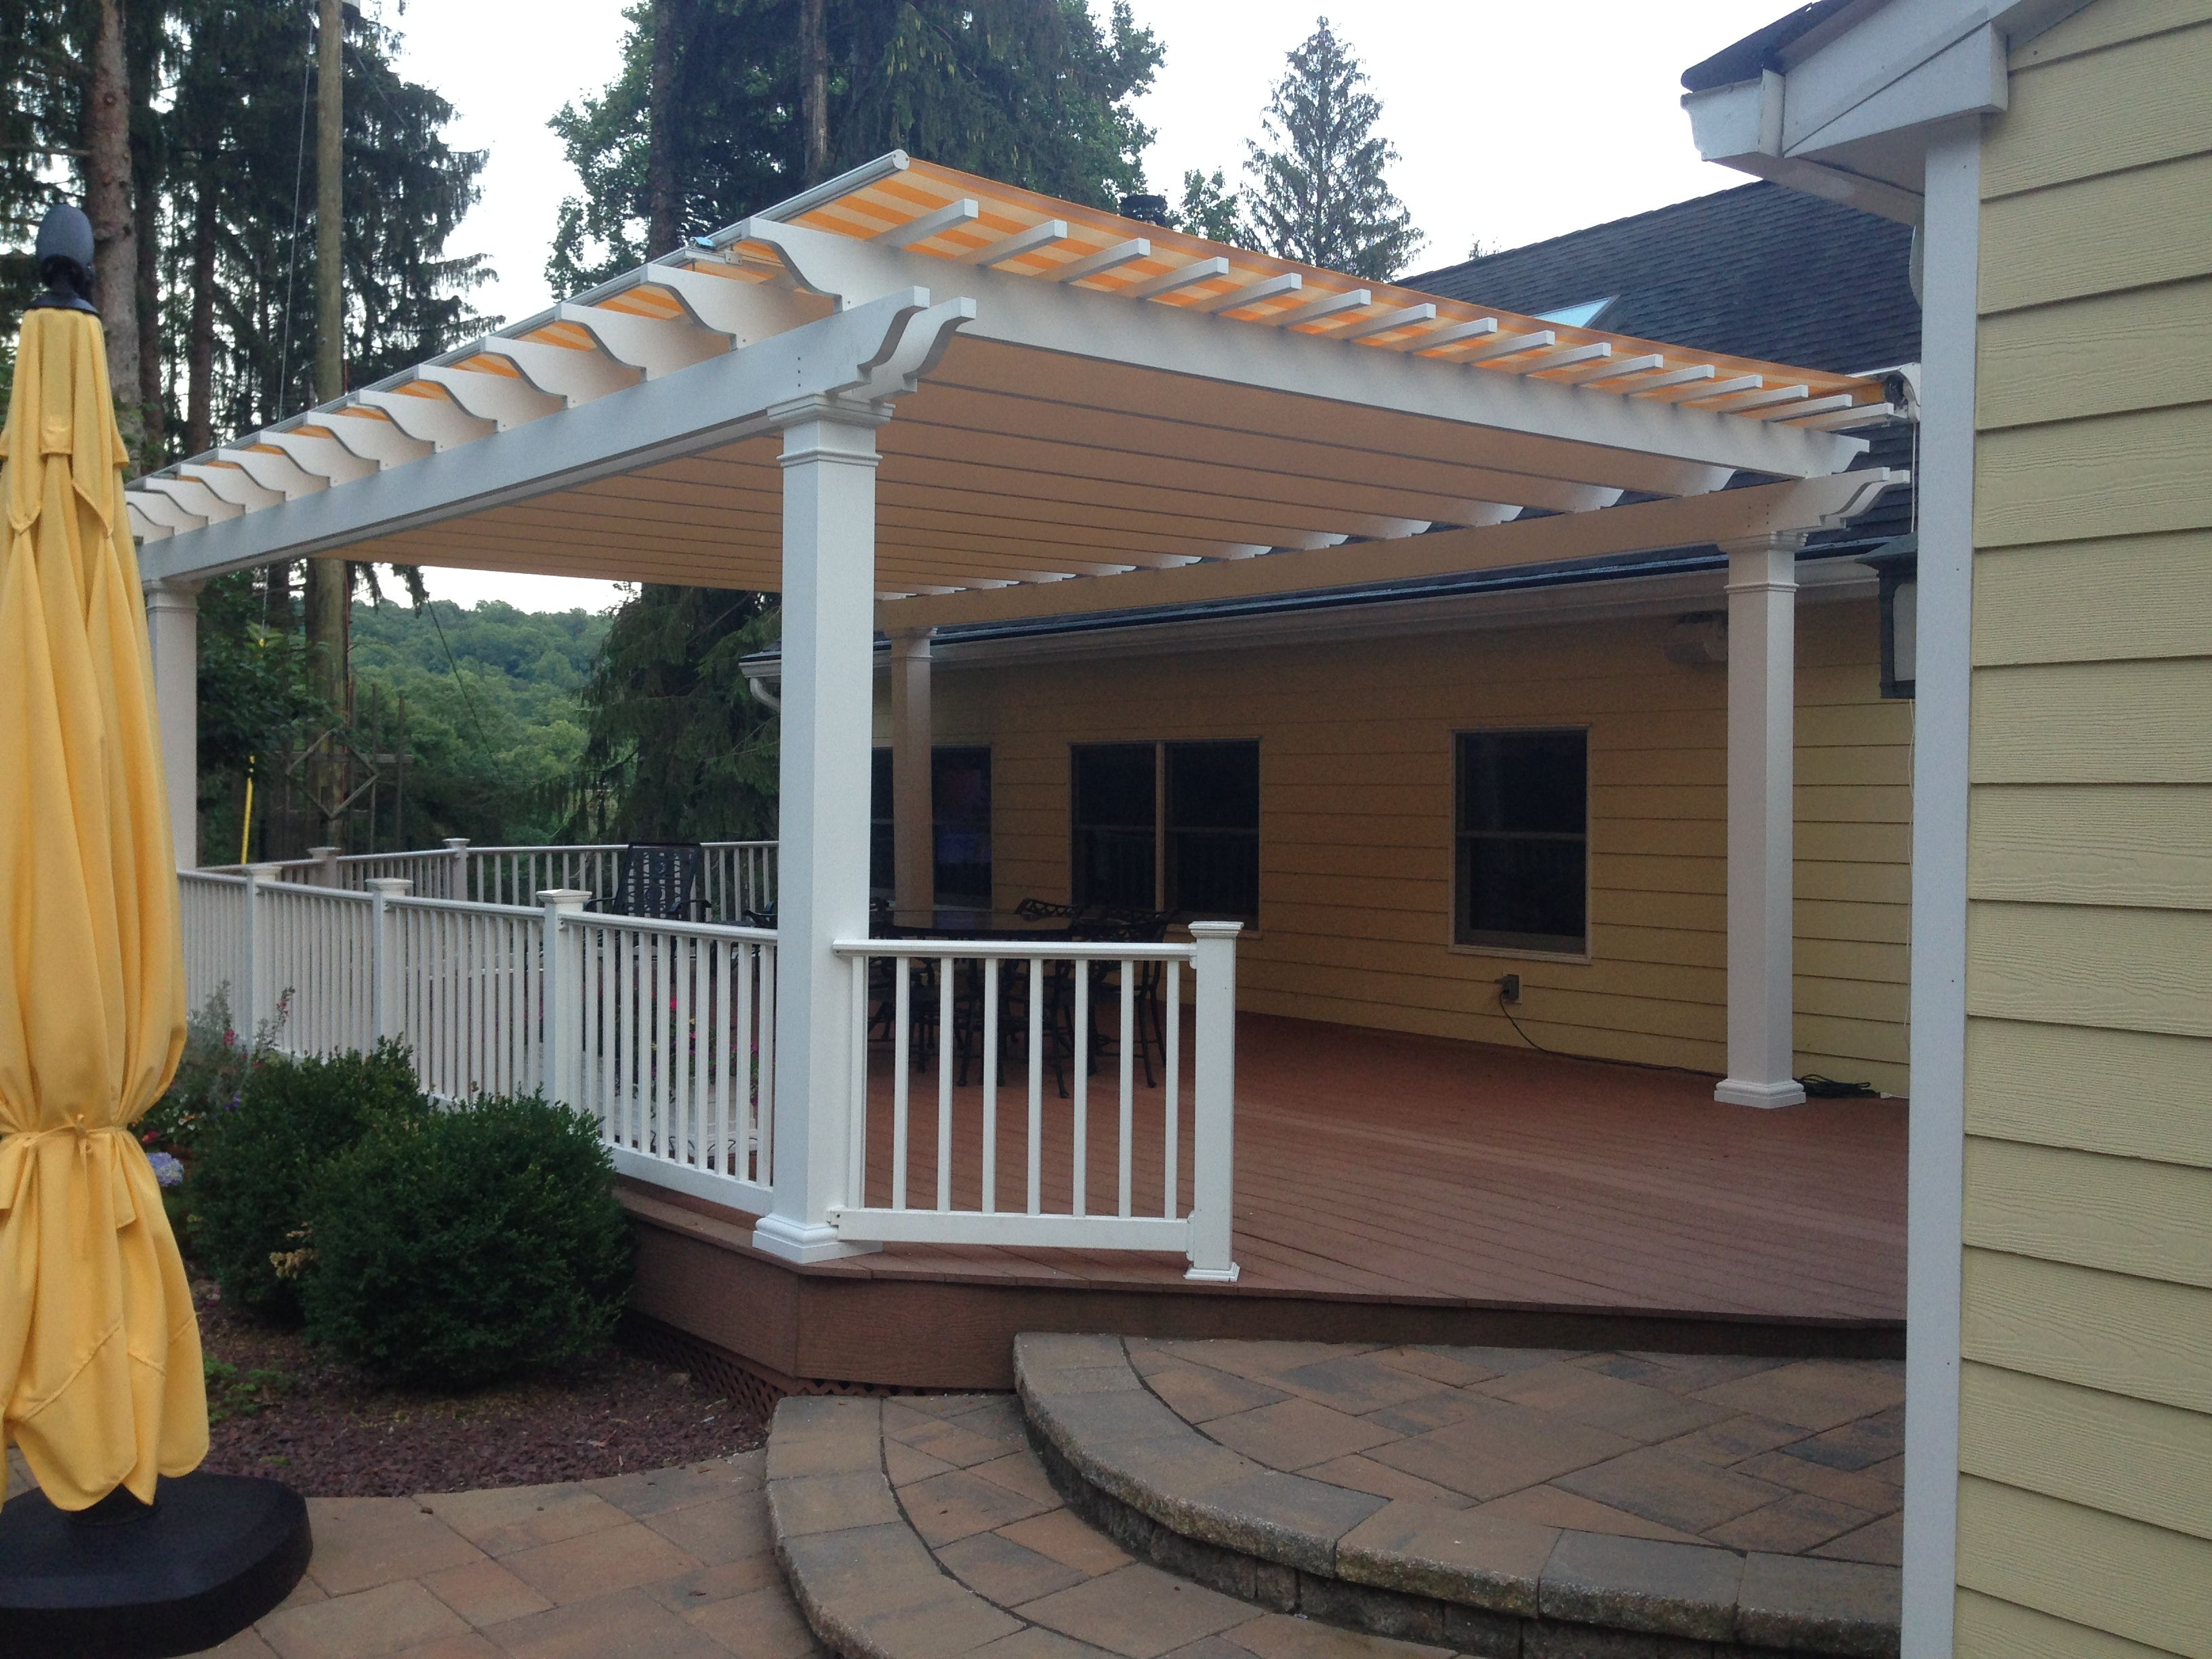 Fiberglass Pergola With Retractable Shade Canopy New